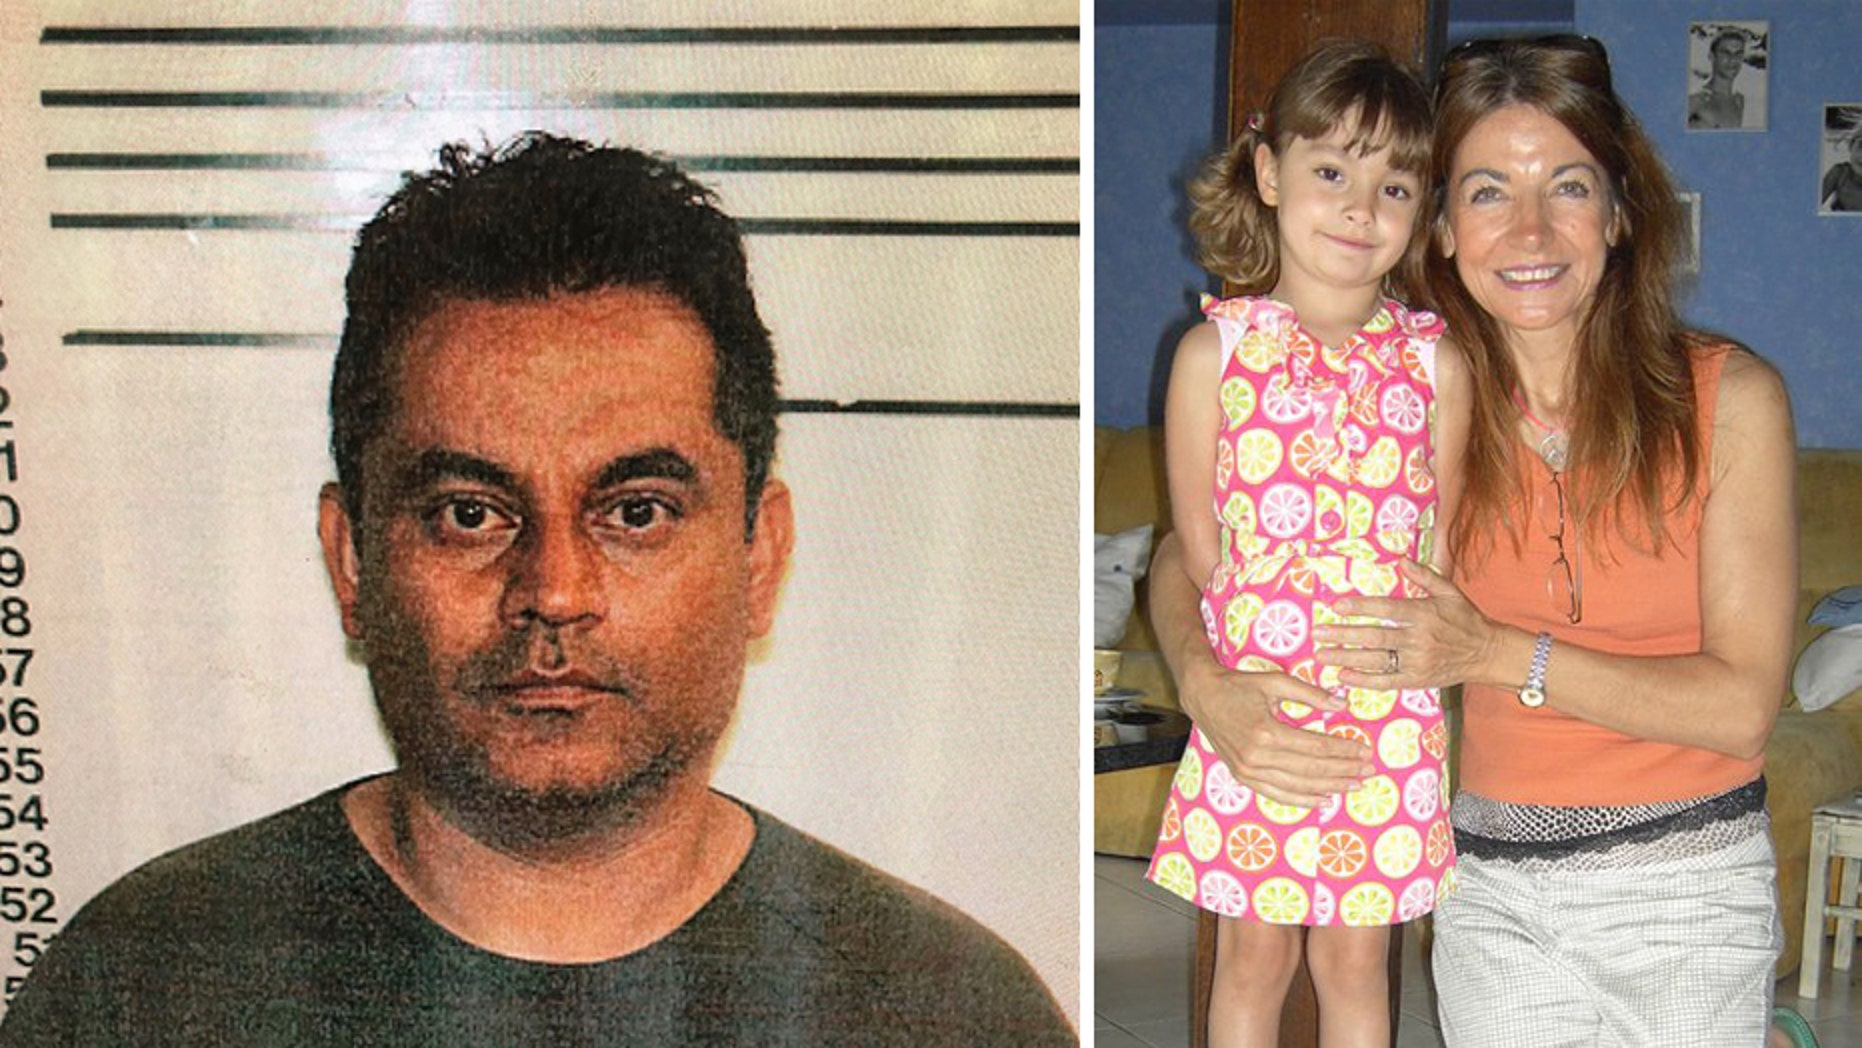 Mugshot for Oscar Lozado. Sylviana Fink with her daughter Angelina.